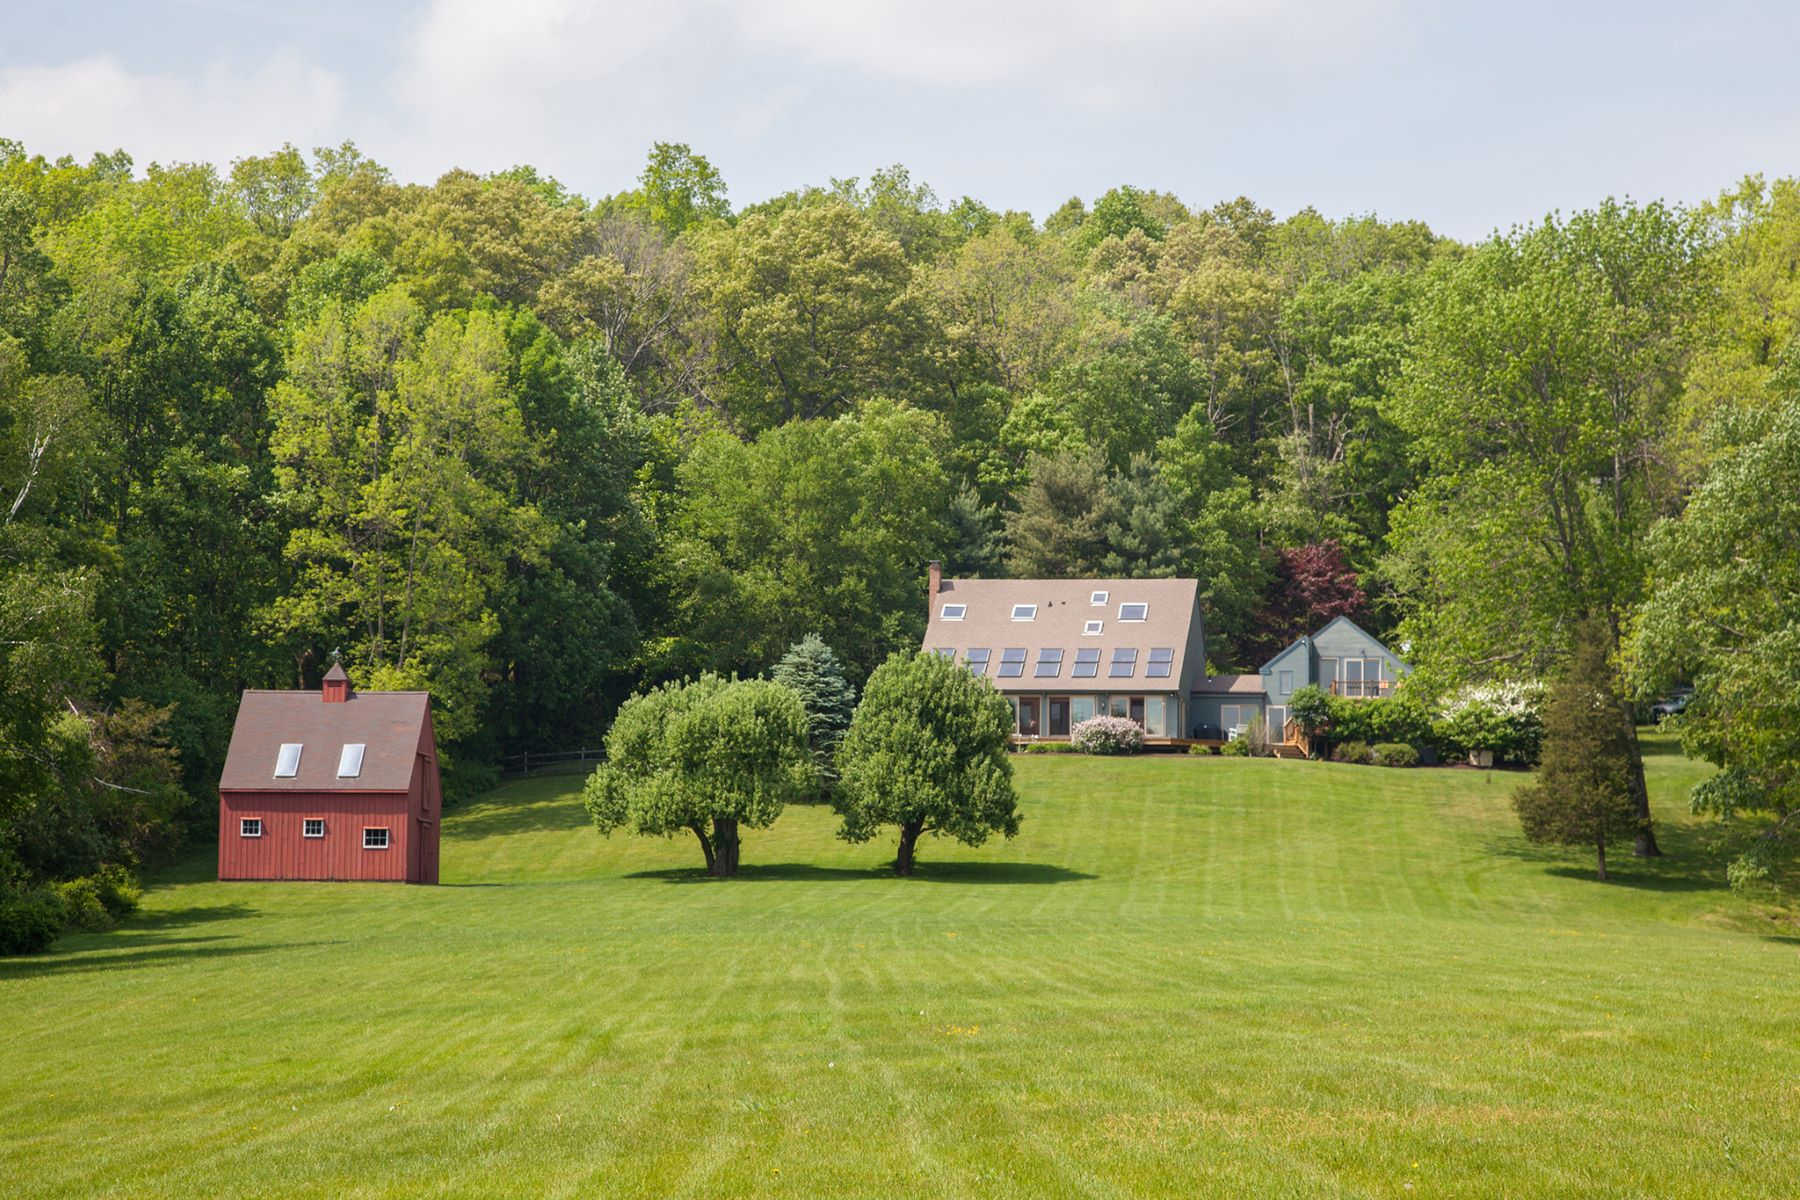 Single Family Home for Sale at Gorgeous Setting with Open Meadow 44 A Booth Rd Roxbury, Connecticut, 06783 United States